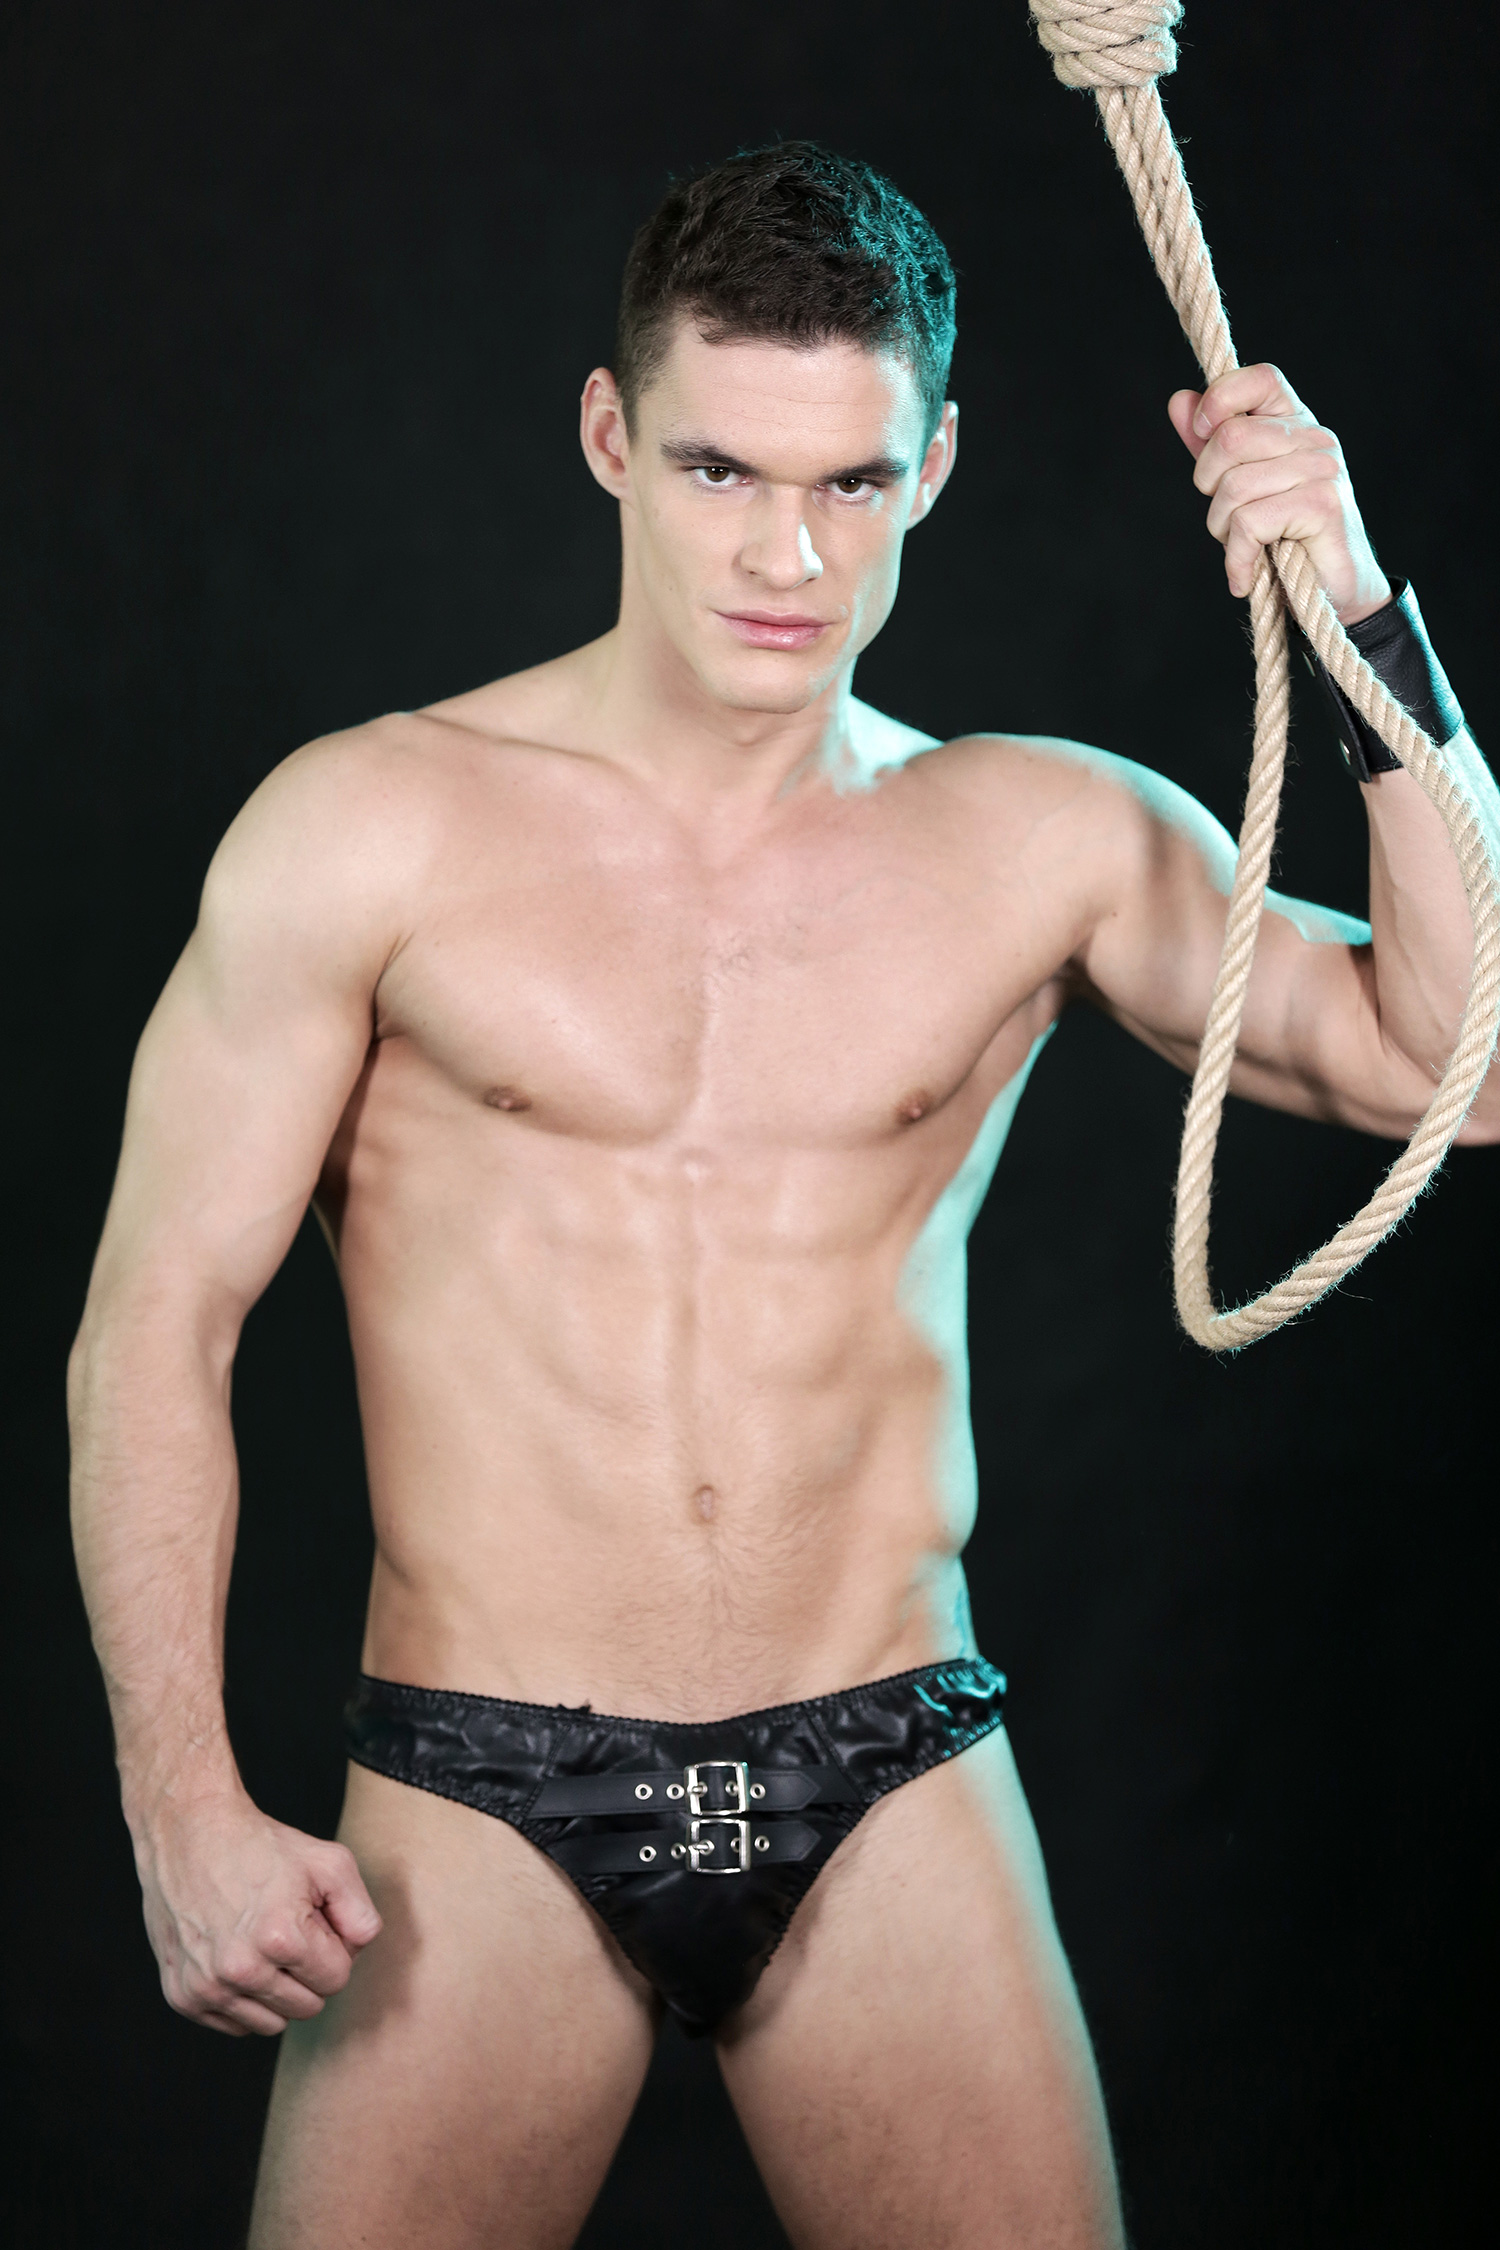 Gay dating in swindon gloucestershire